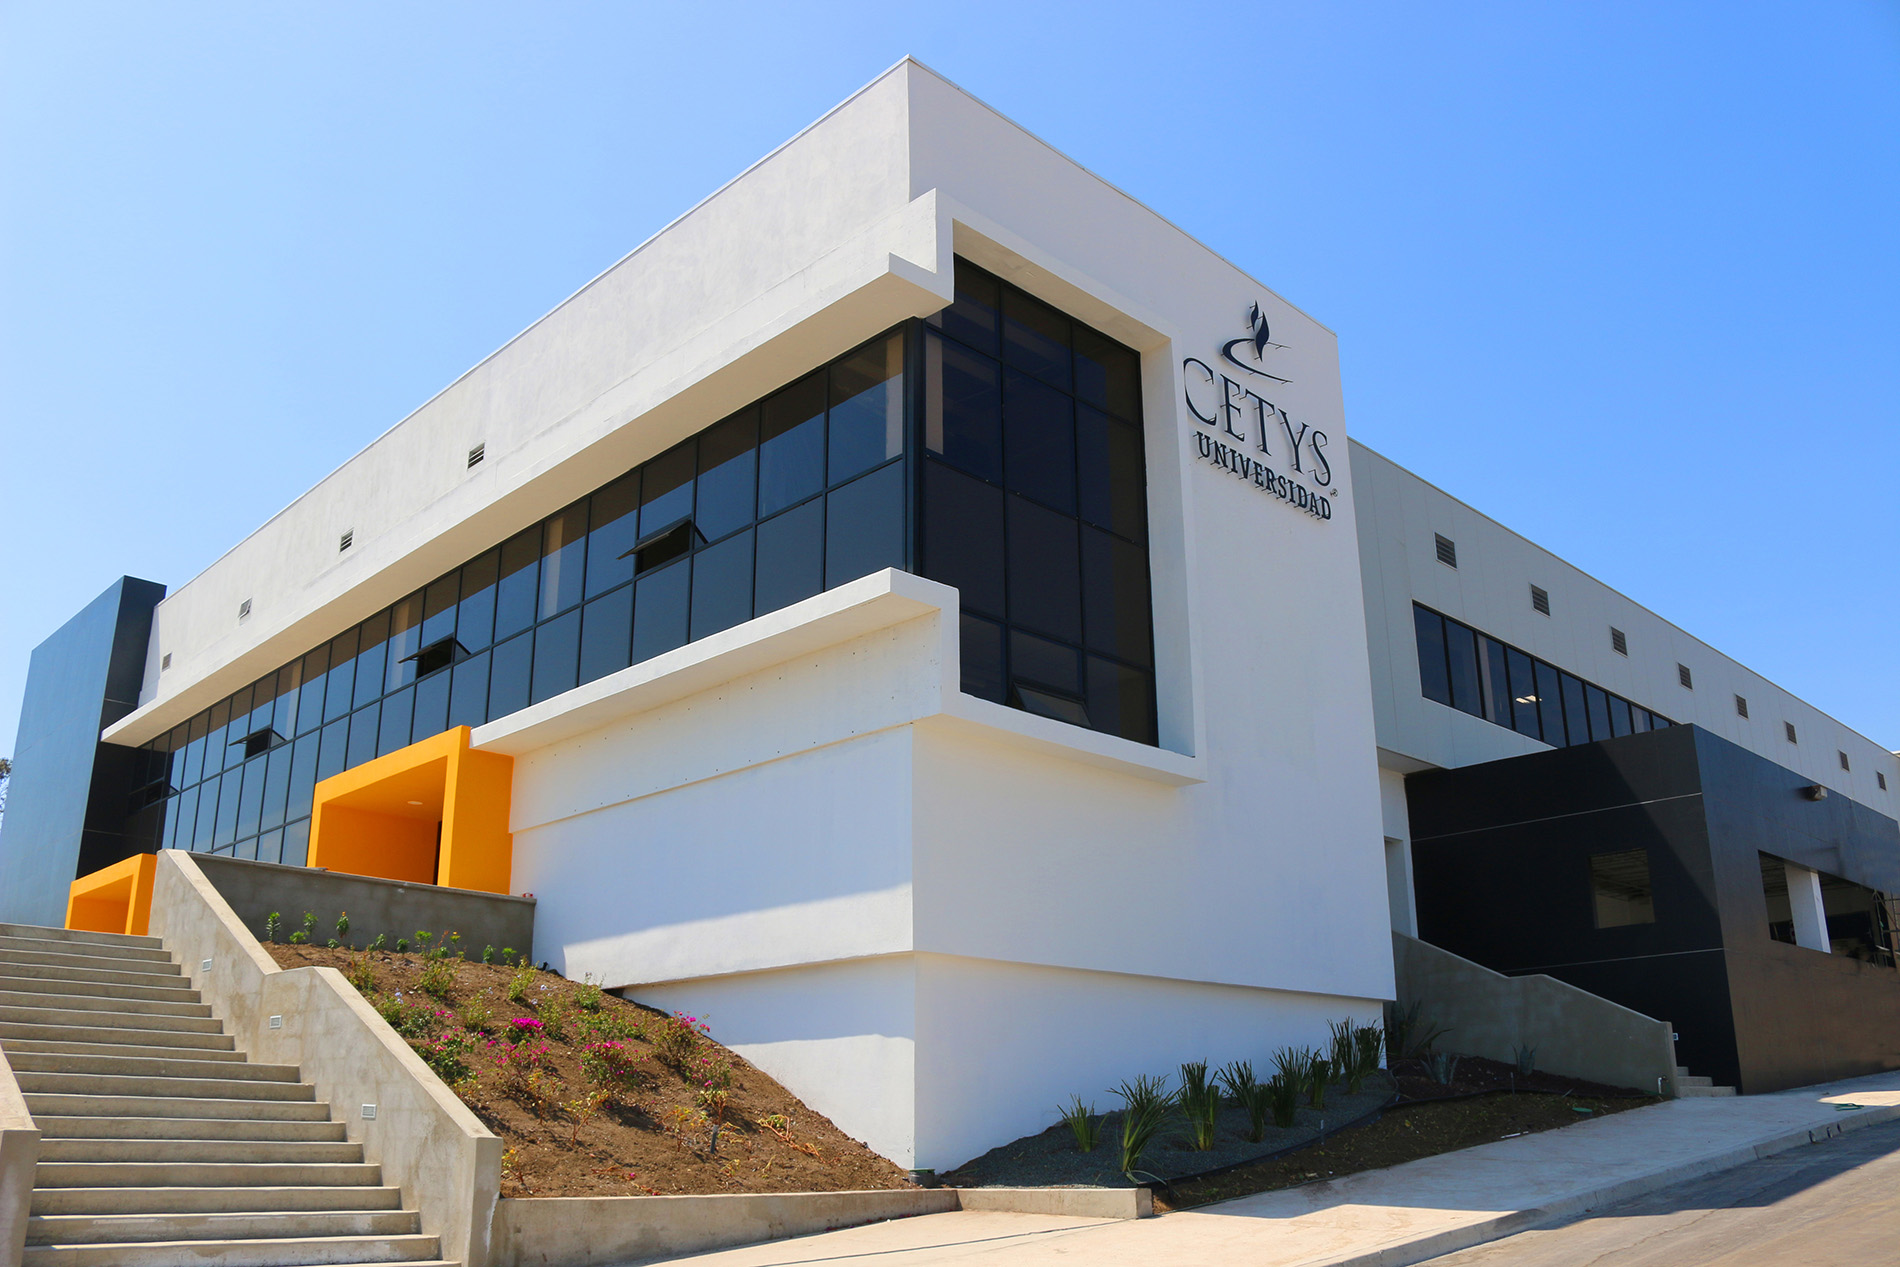 Cetys Ensenada campus